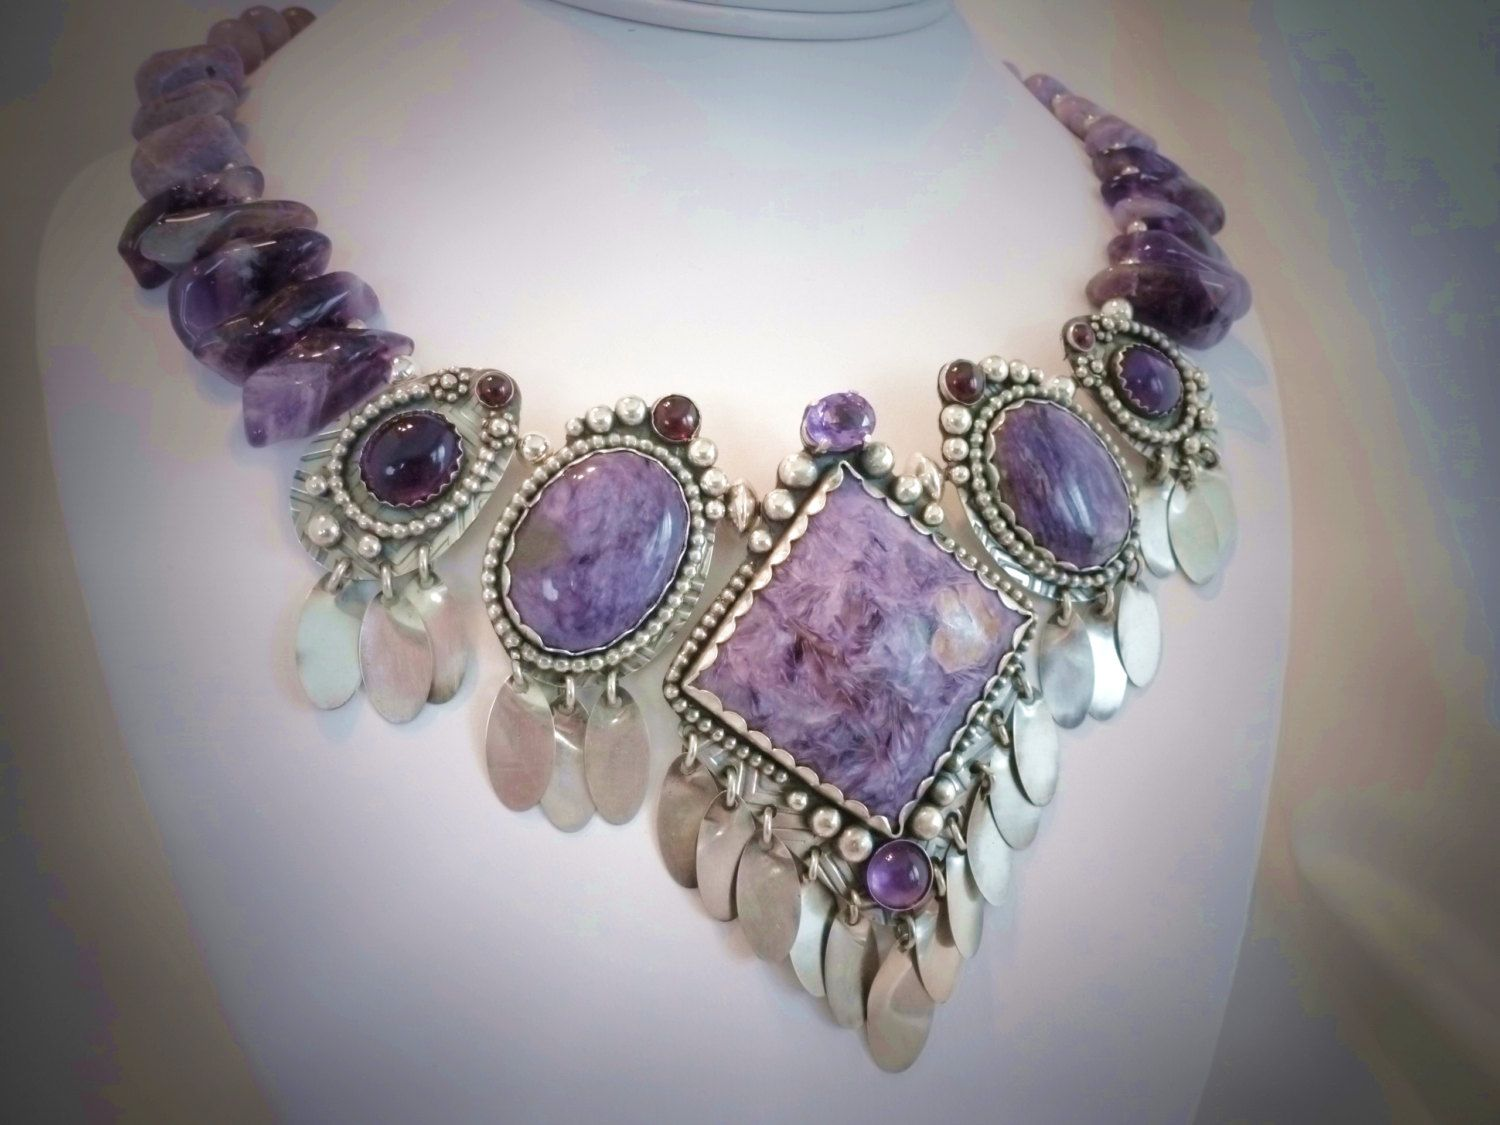 Charoite, Amethyst and Garnet Silver Necklace by PKDesignerJewelry on Etsy https://www.etsy.com/listing/150351204/charoite-amethyst-and-garnet-silver